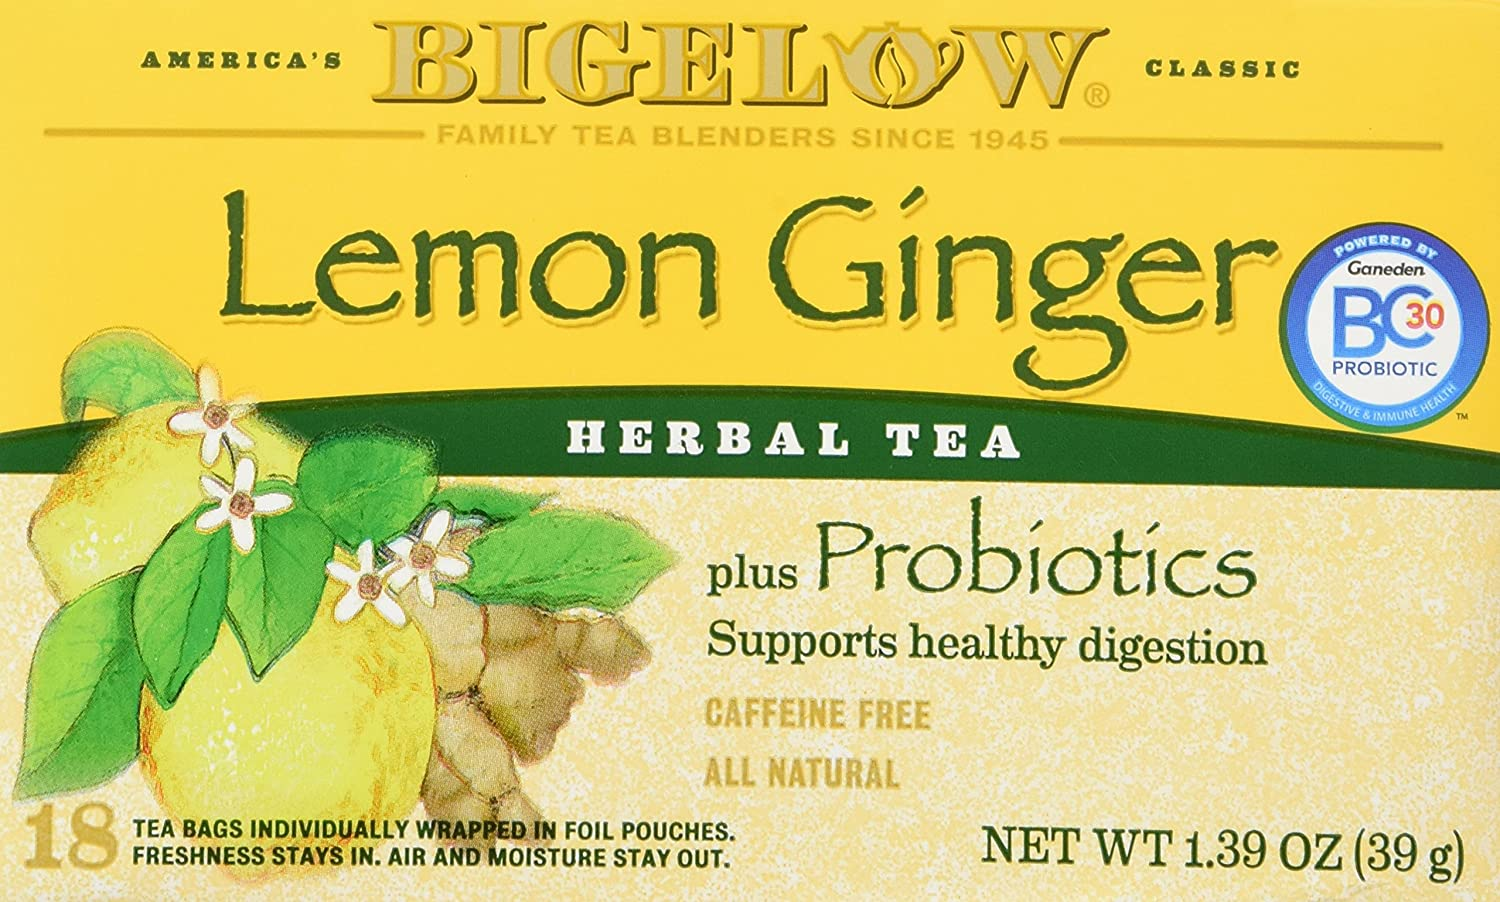 Bigelow Classic Lemon Ginger Herbal Tea Plus Probiotics 18 Bags